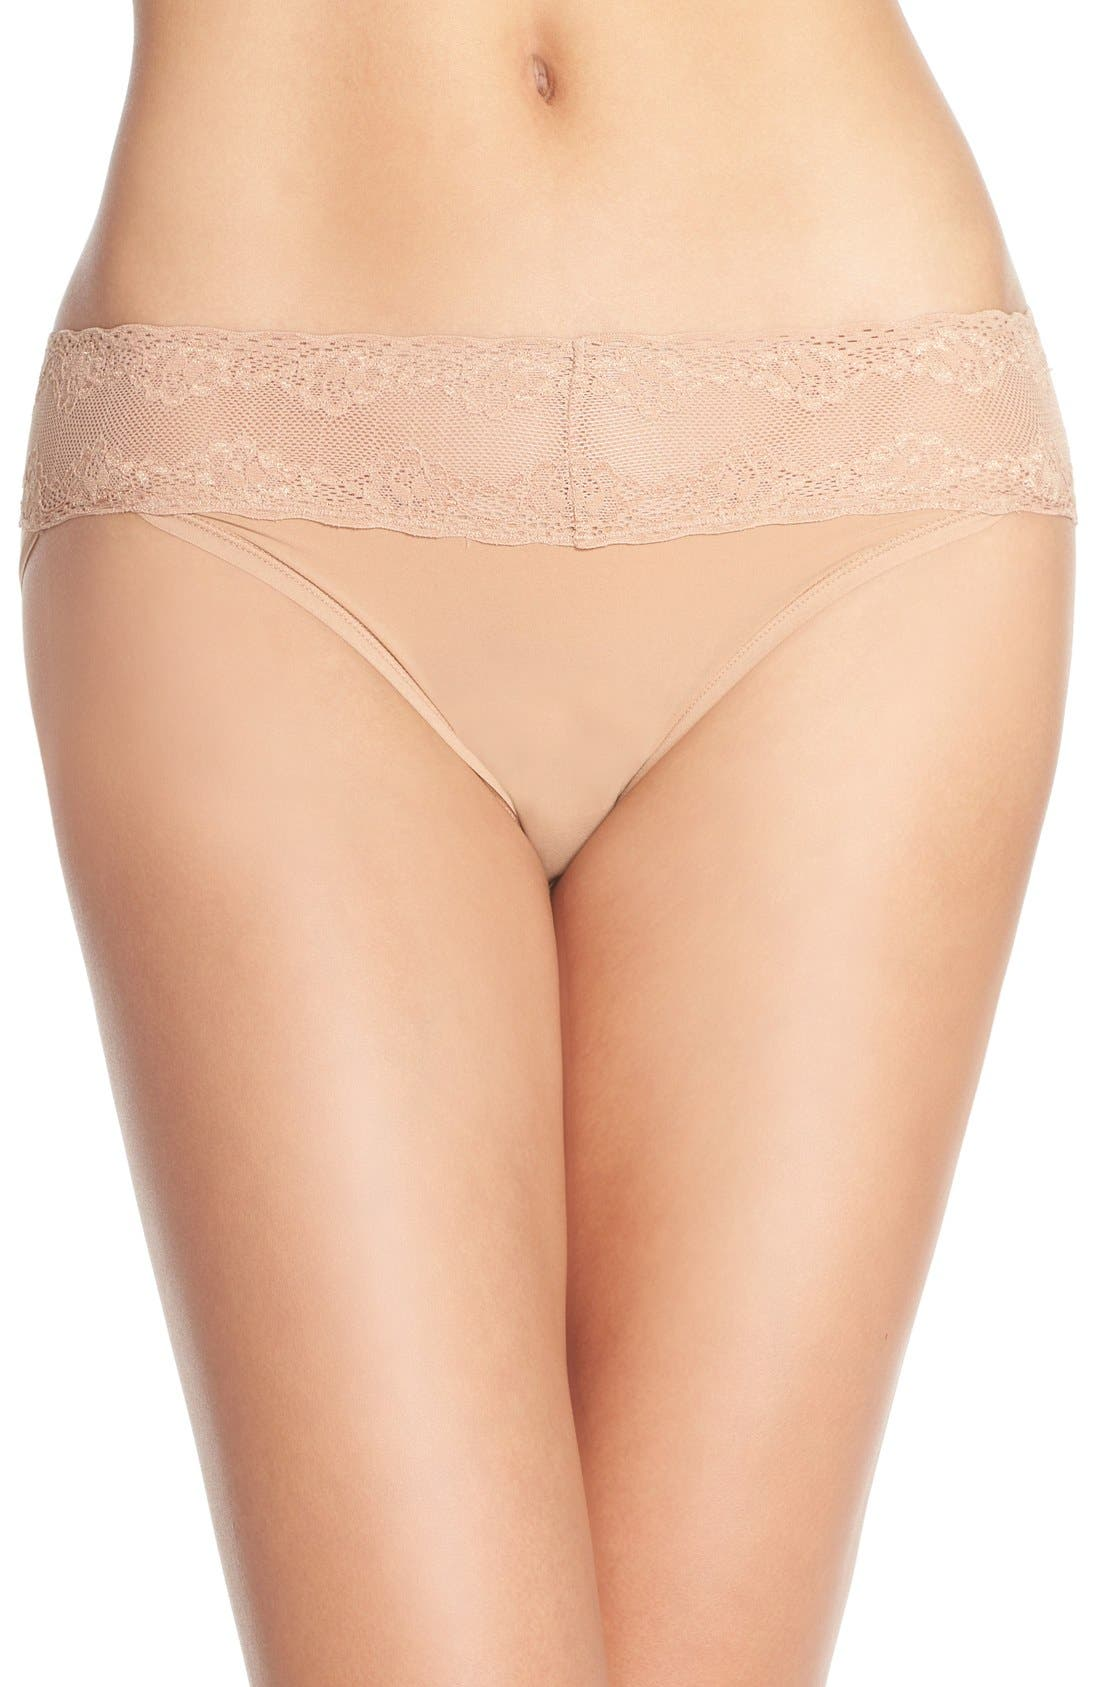 Natori Bliss Perfection Bikini (3 for $45)